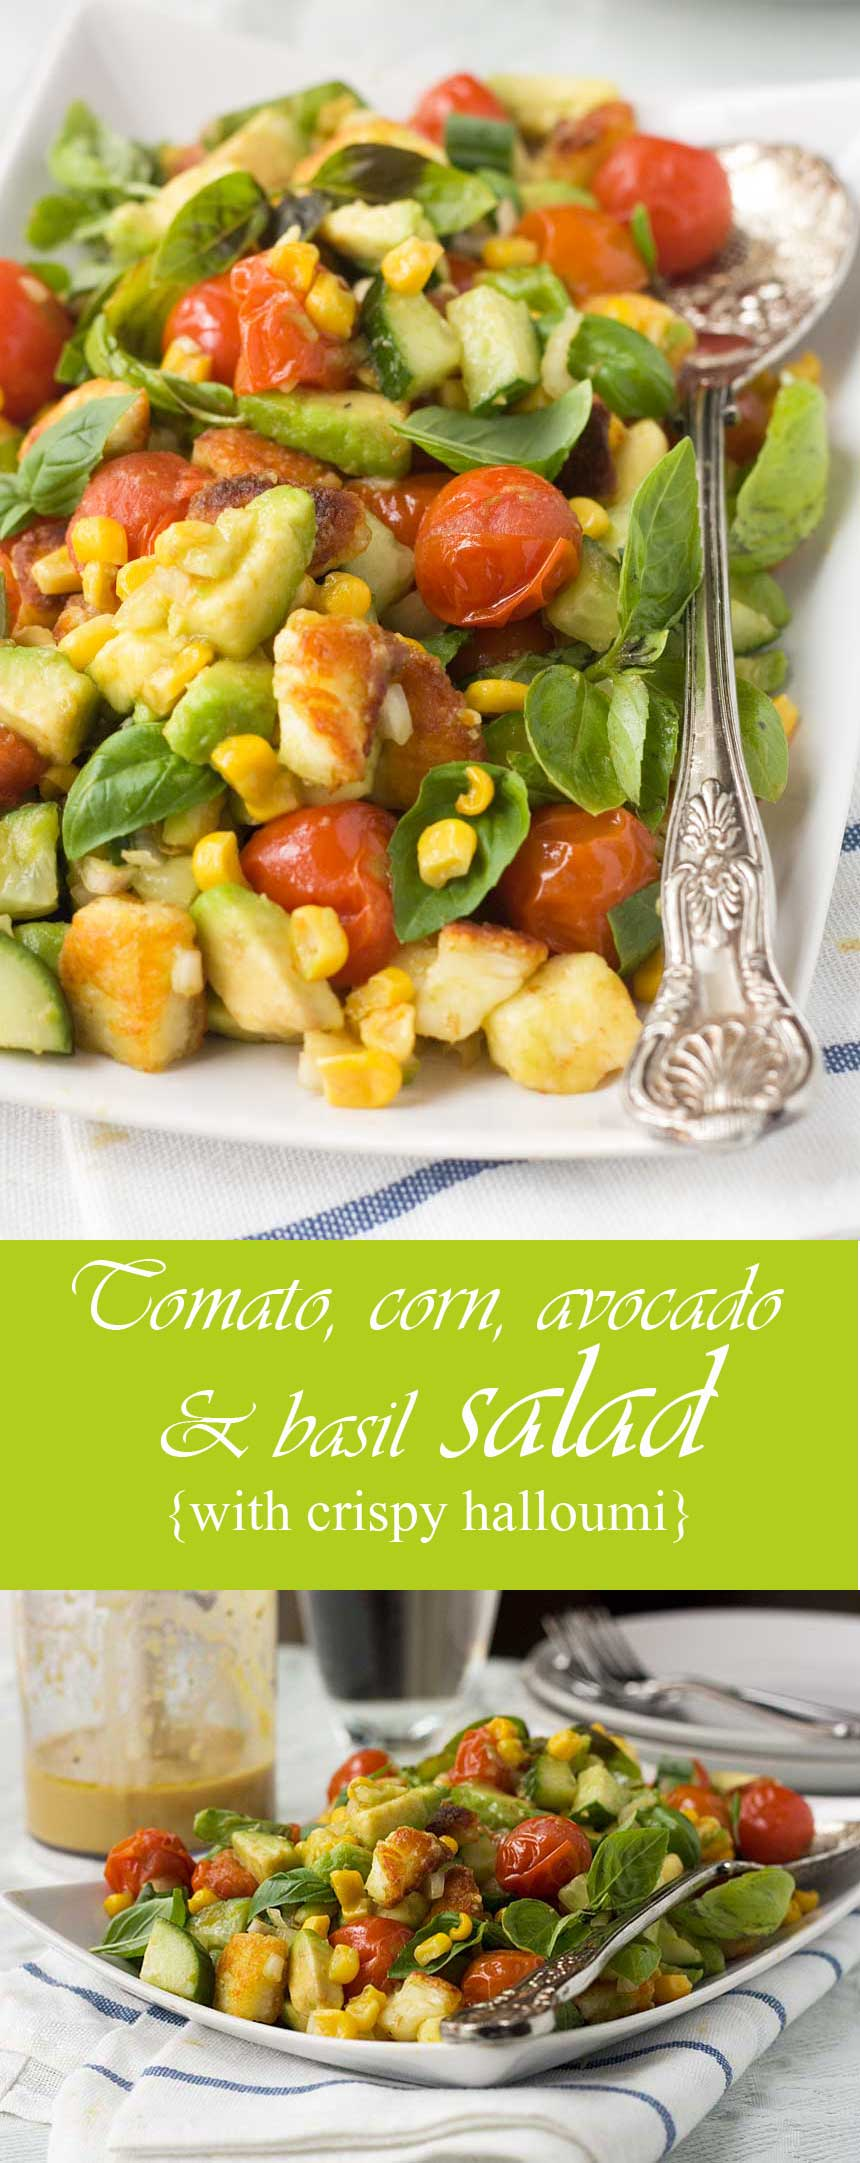 Tomato, corn, avocado and basil salad (with crispy halloumi cheese!)